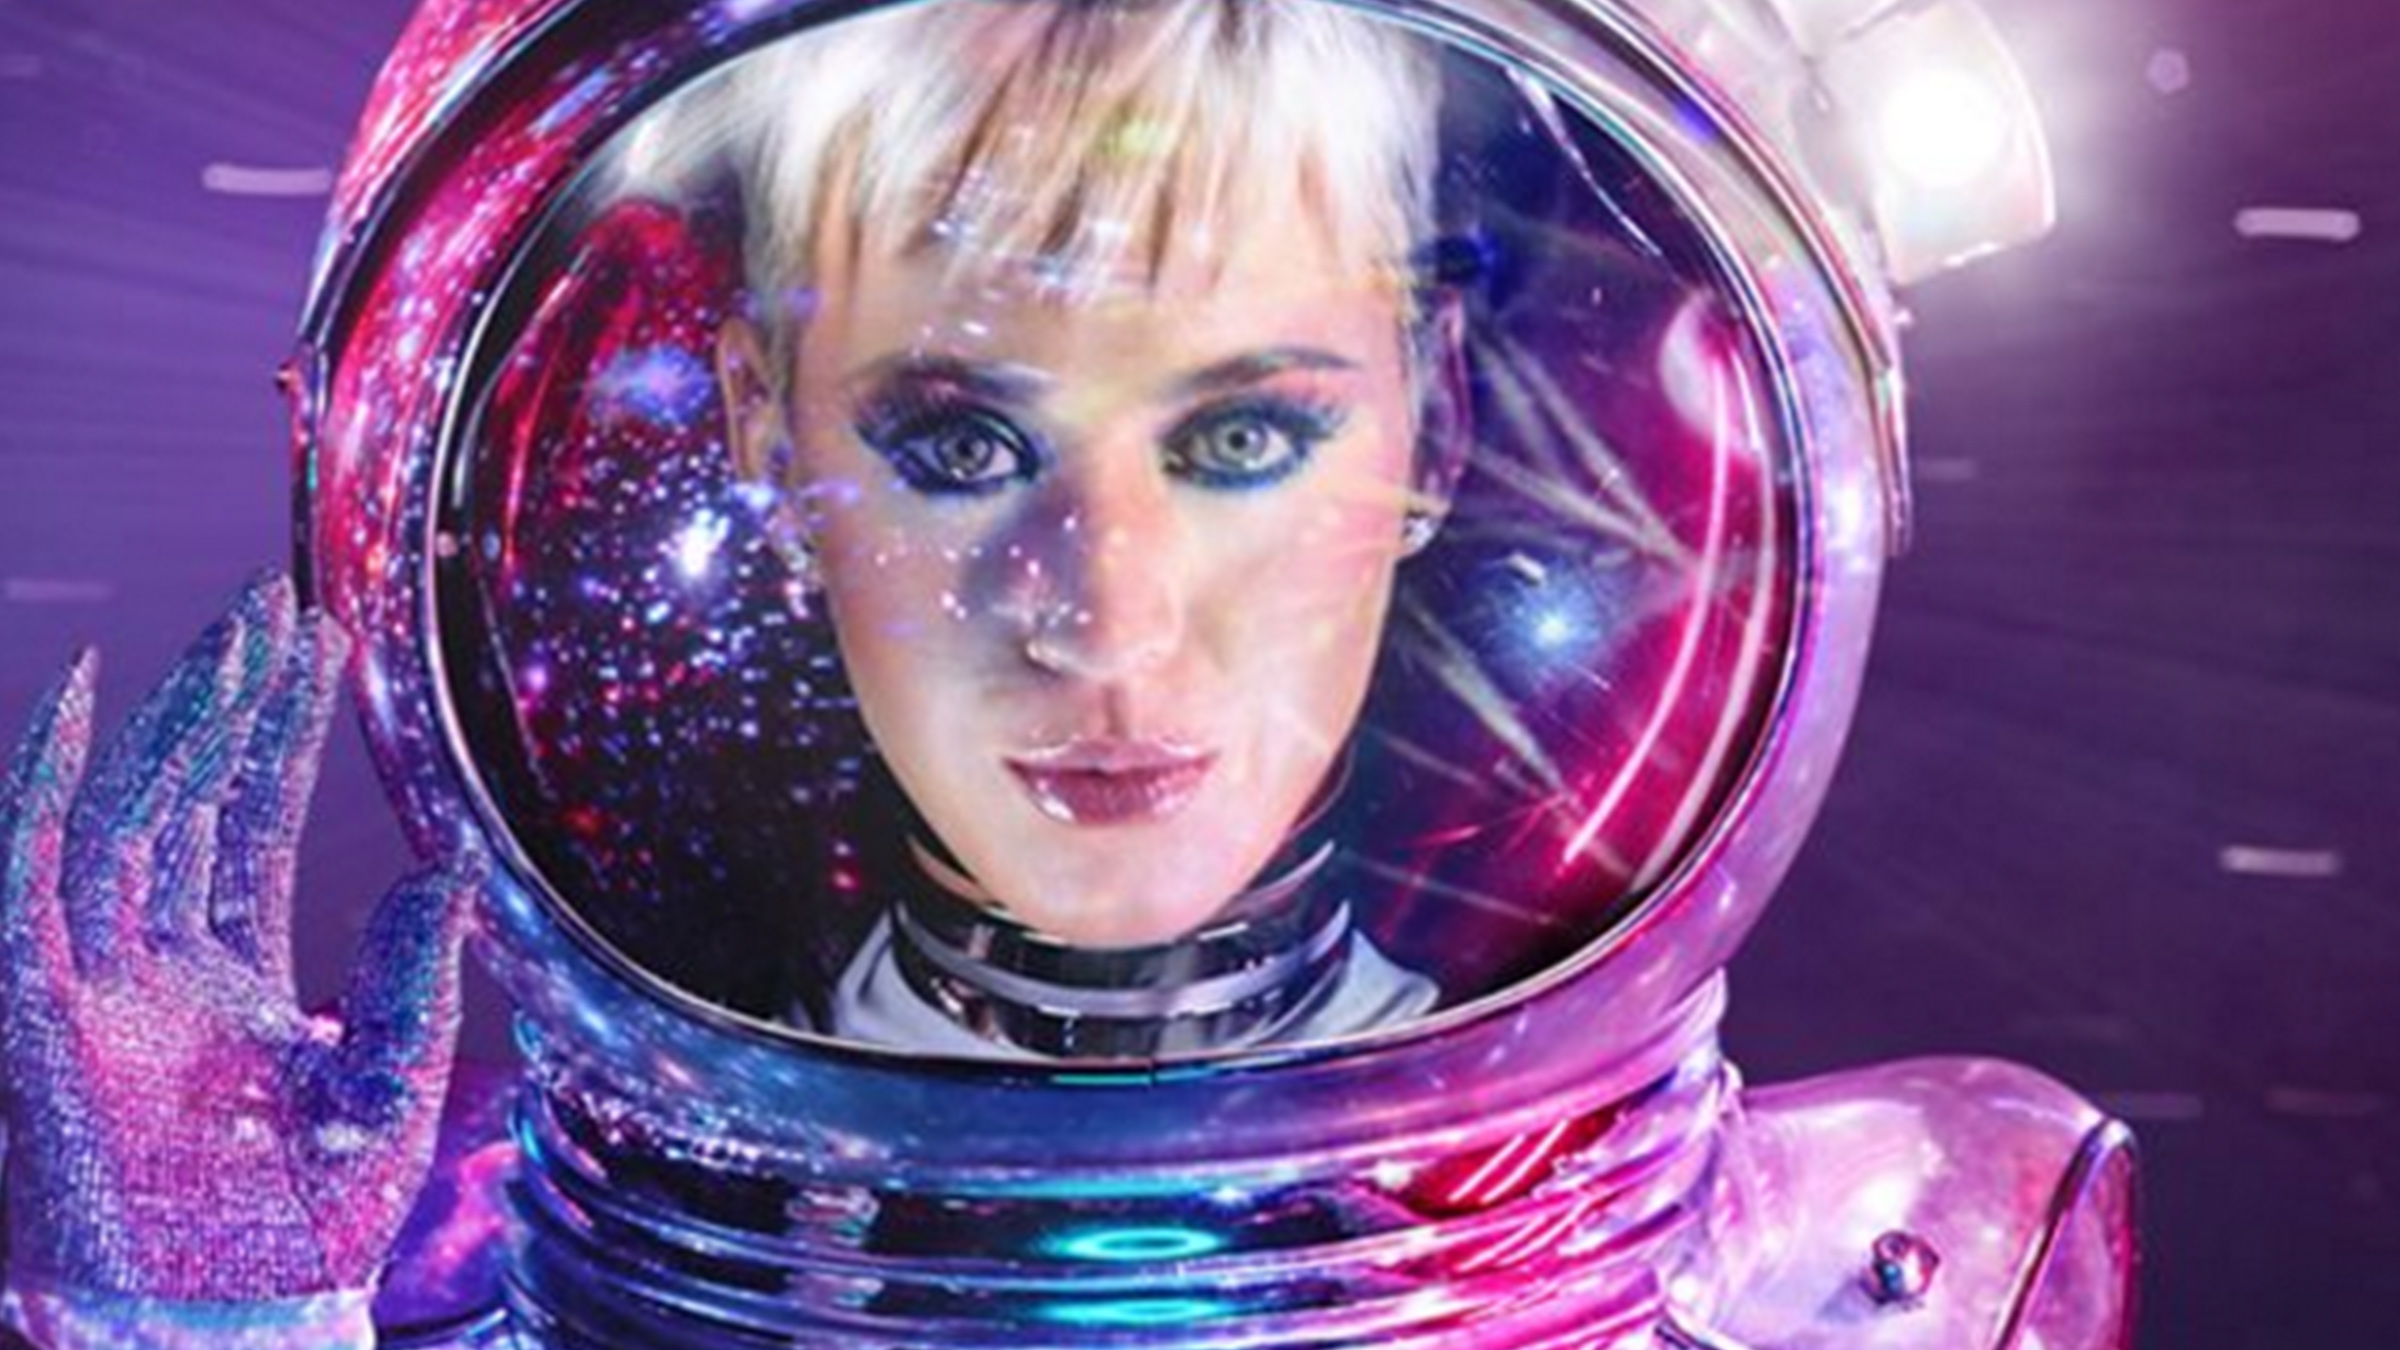 Katy mtv teaser